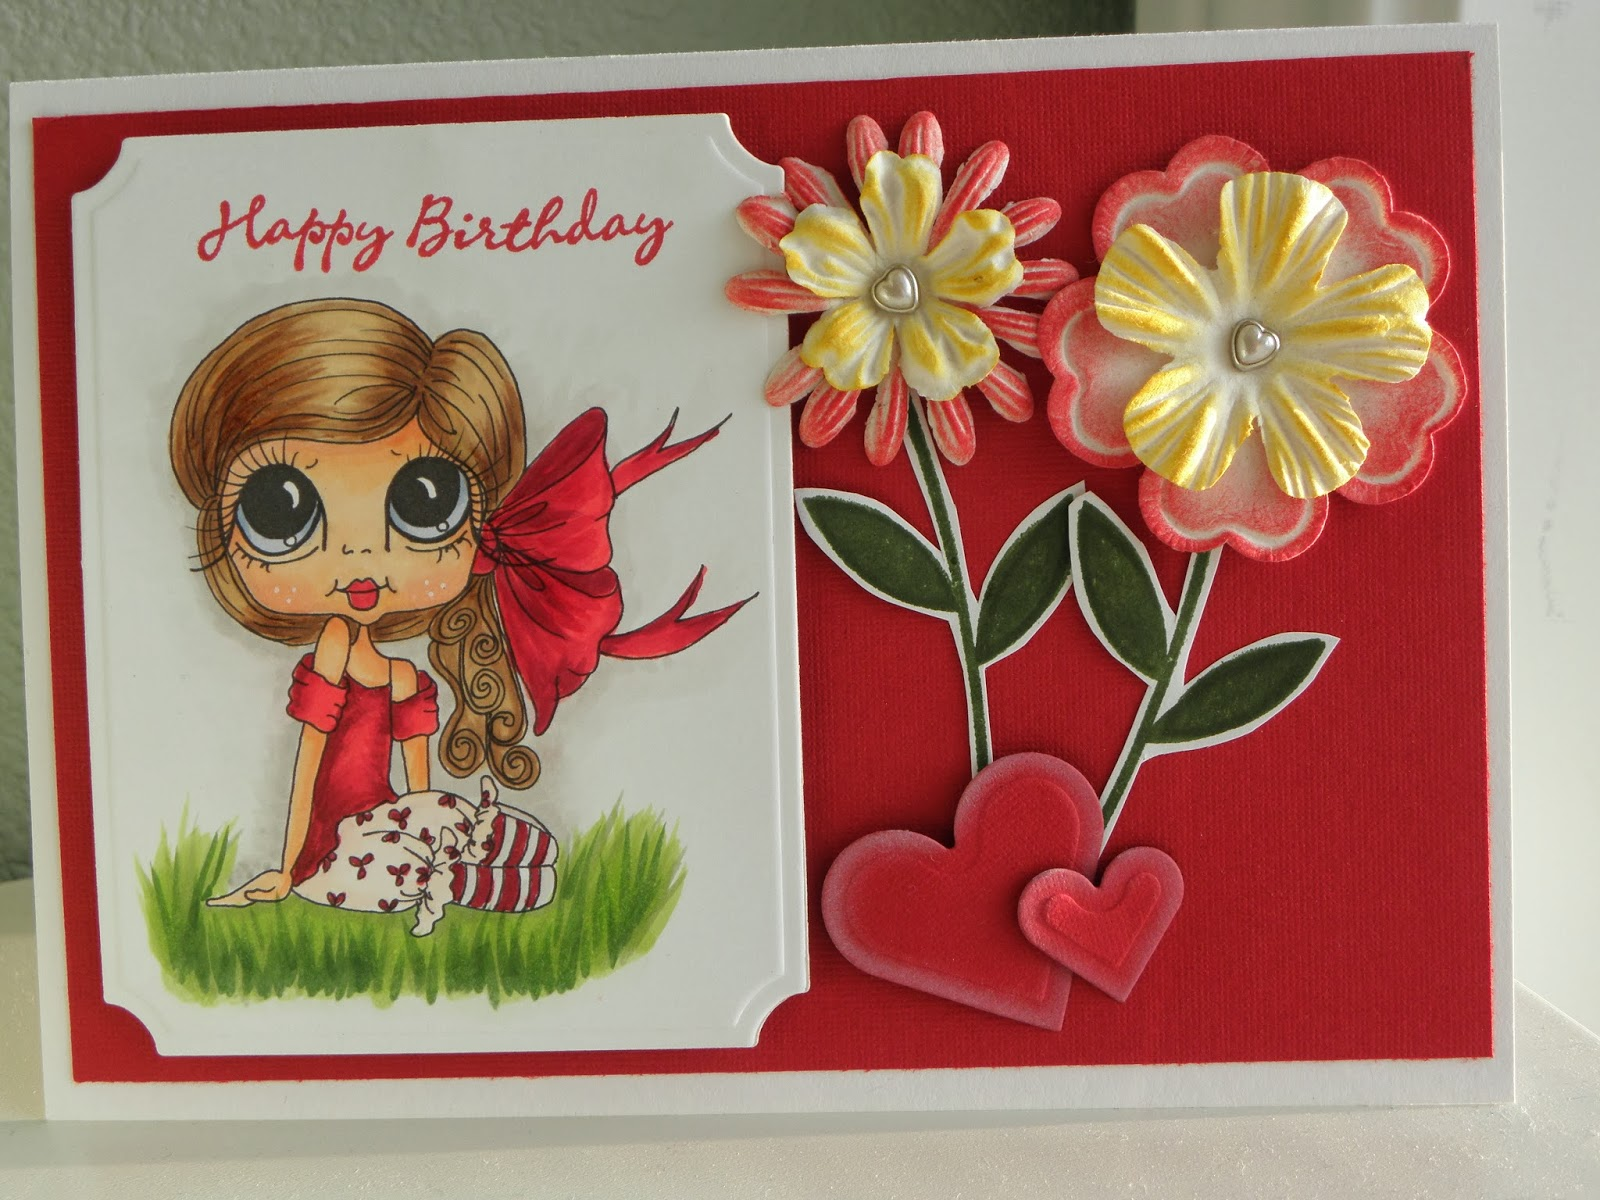 Birthday Cards For Sister In Law ~ Free birthday cards for sister in law card design ideas